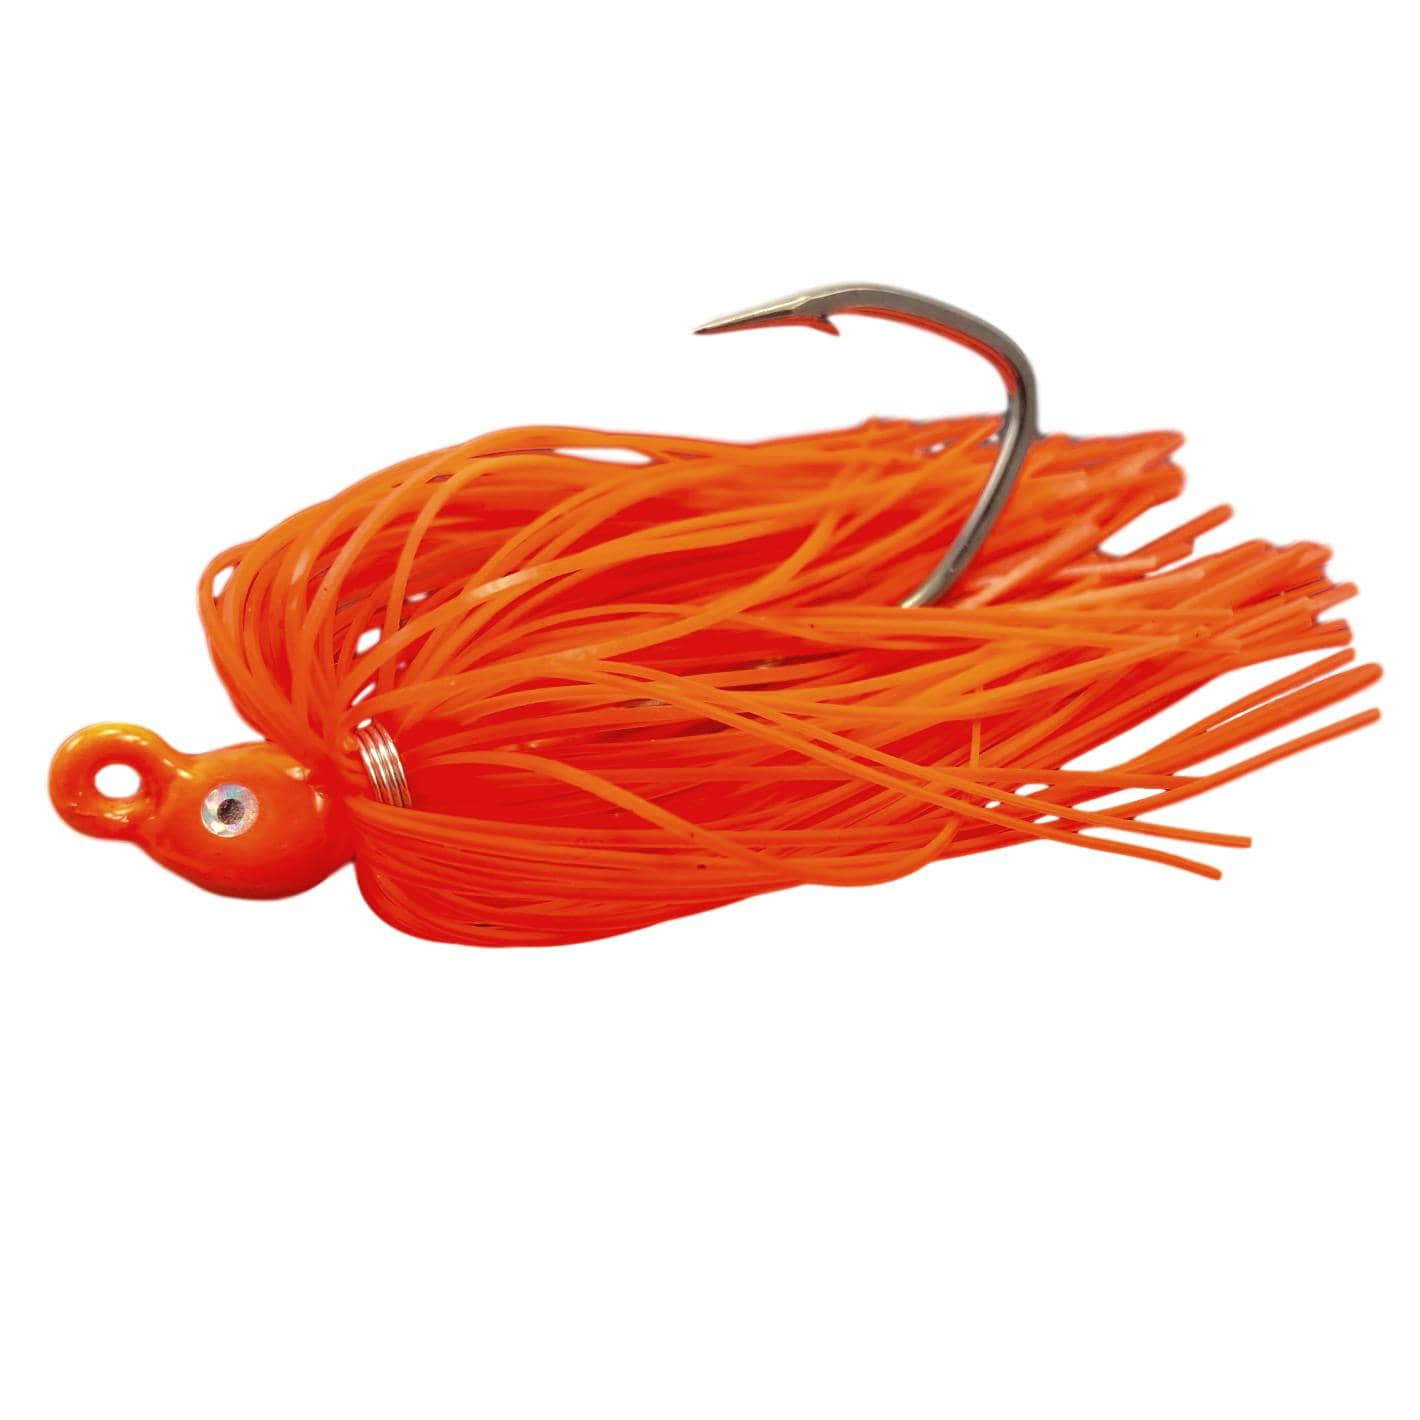 Backwater Custom Baits Poison Tail Jigs (1/4oz Teasers)